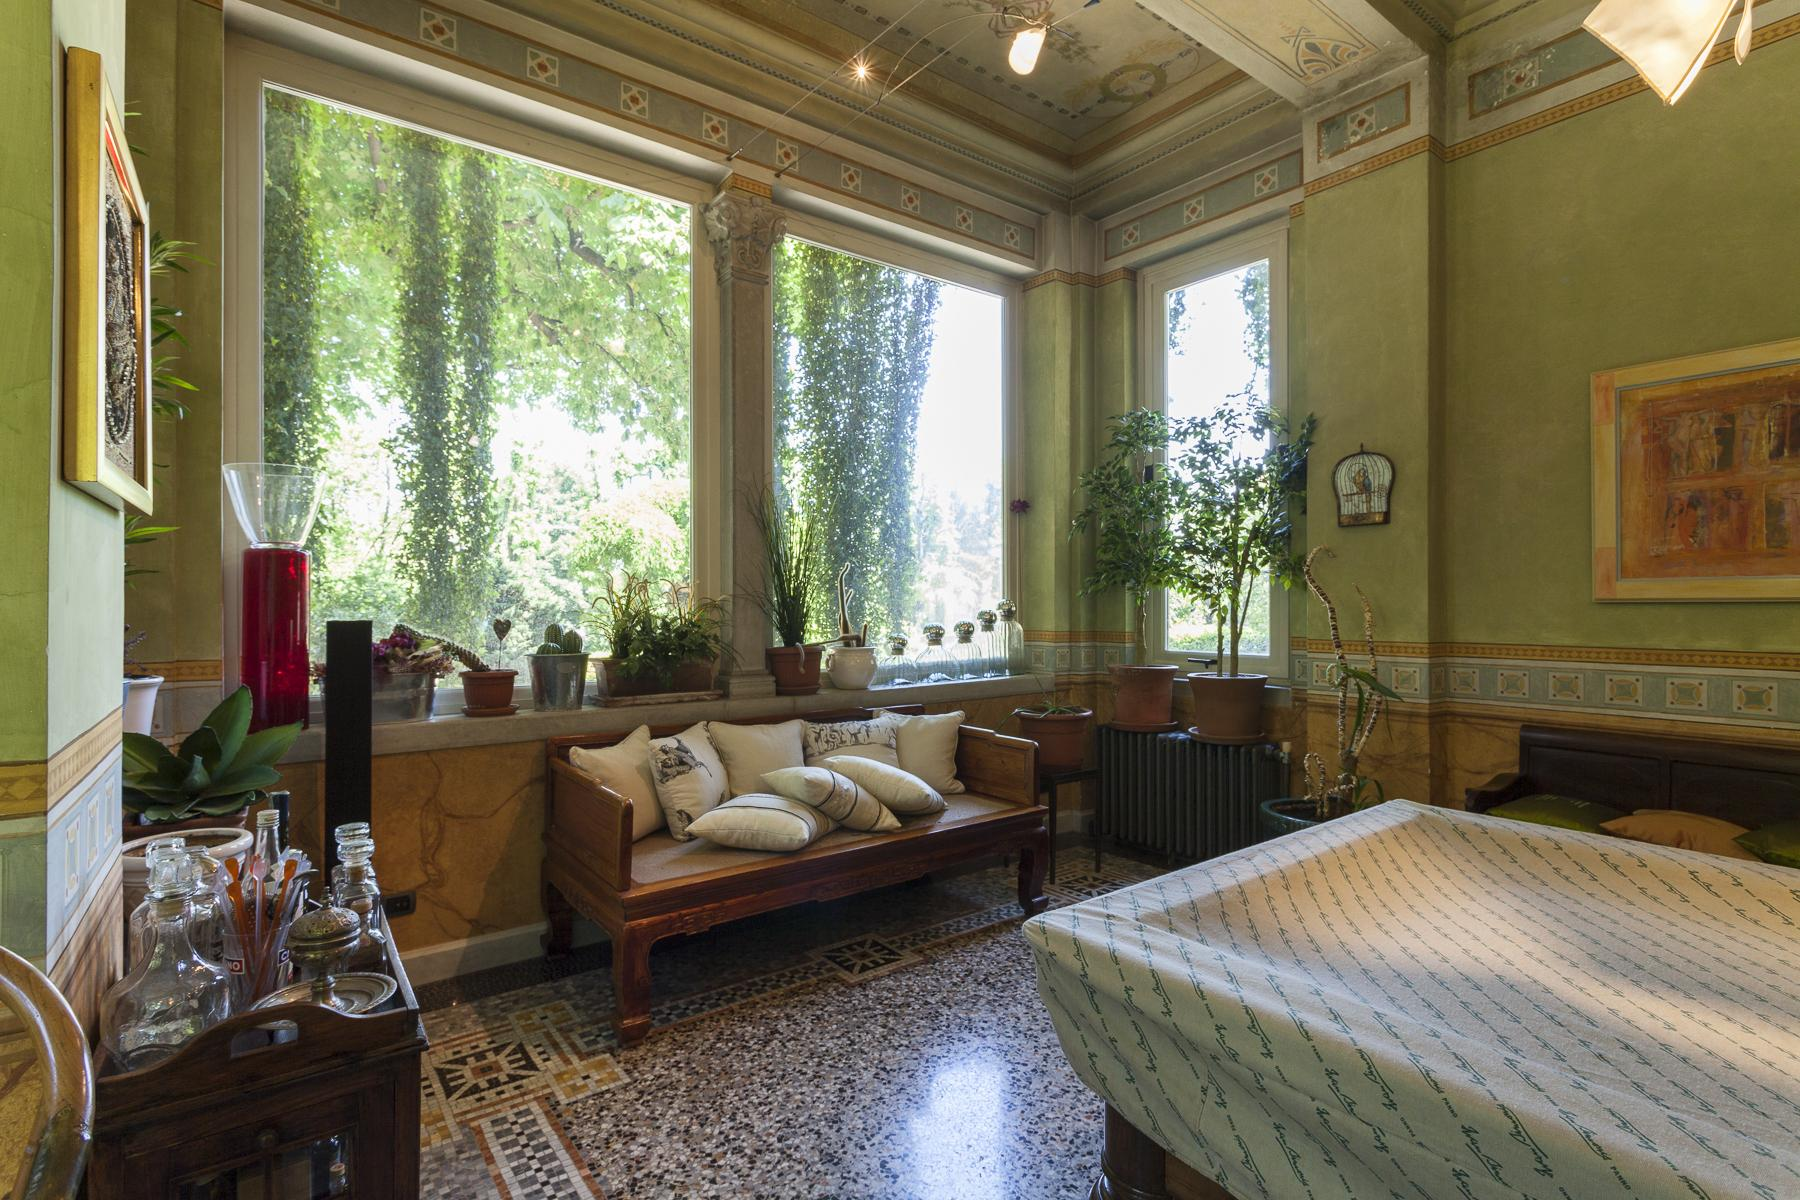 Elegant Art Nouveau villa with private park - 17